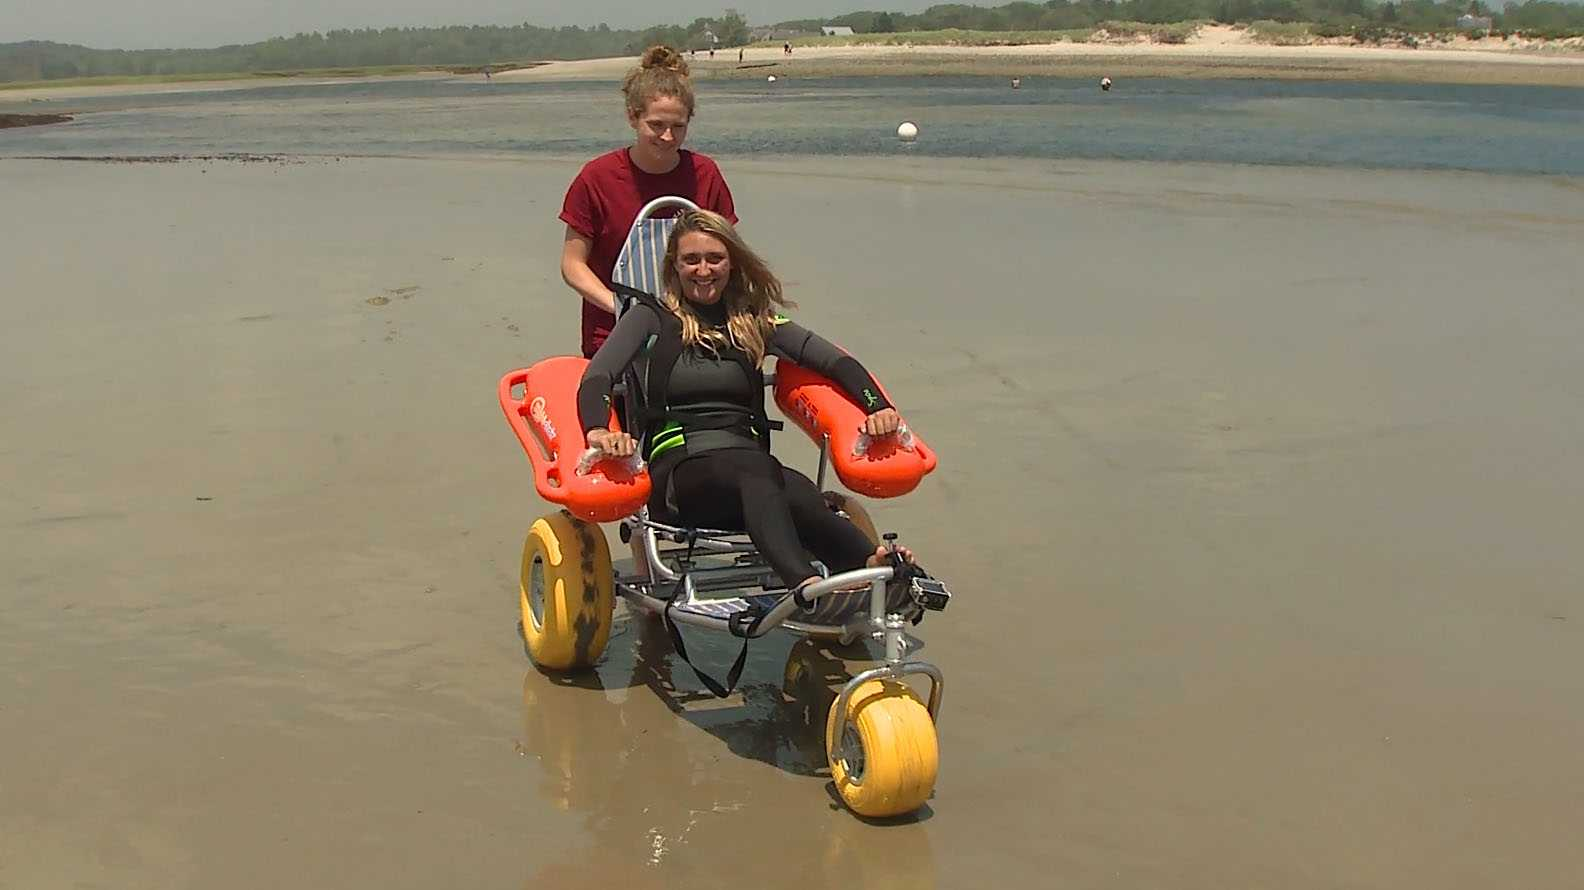 Adapted wheelchair makes beach life possible for people with disabilities